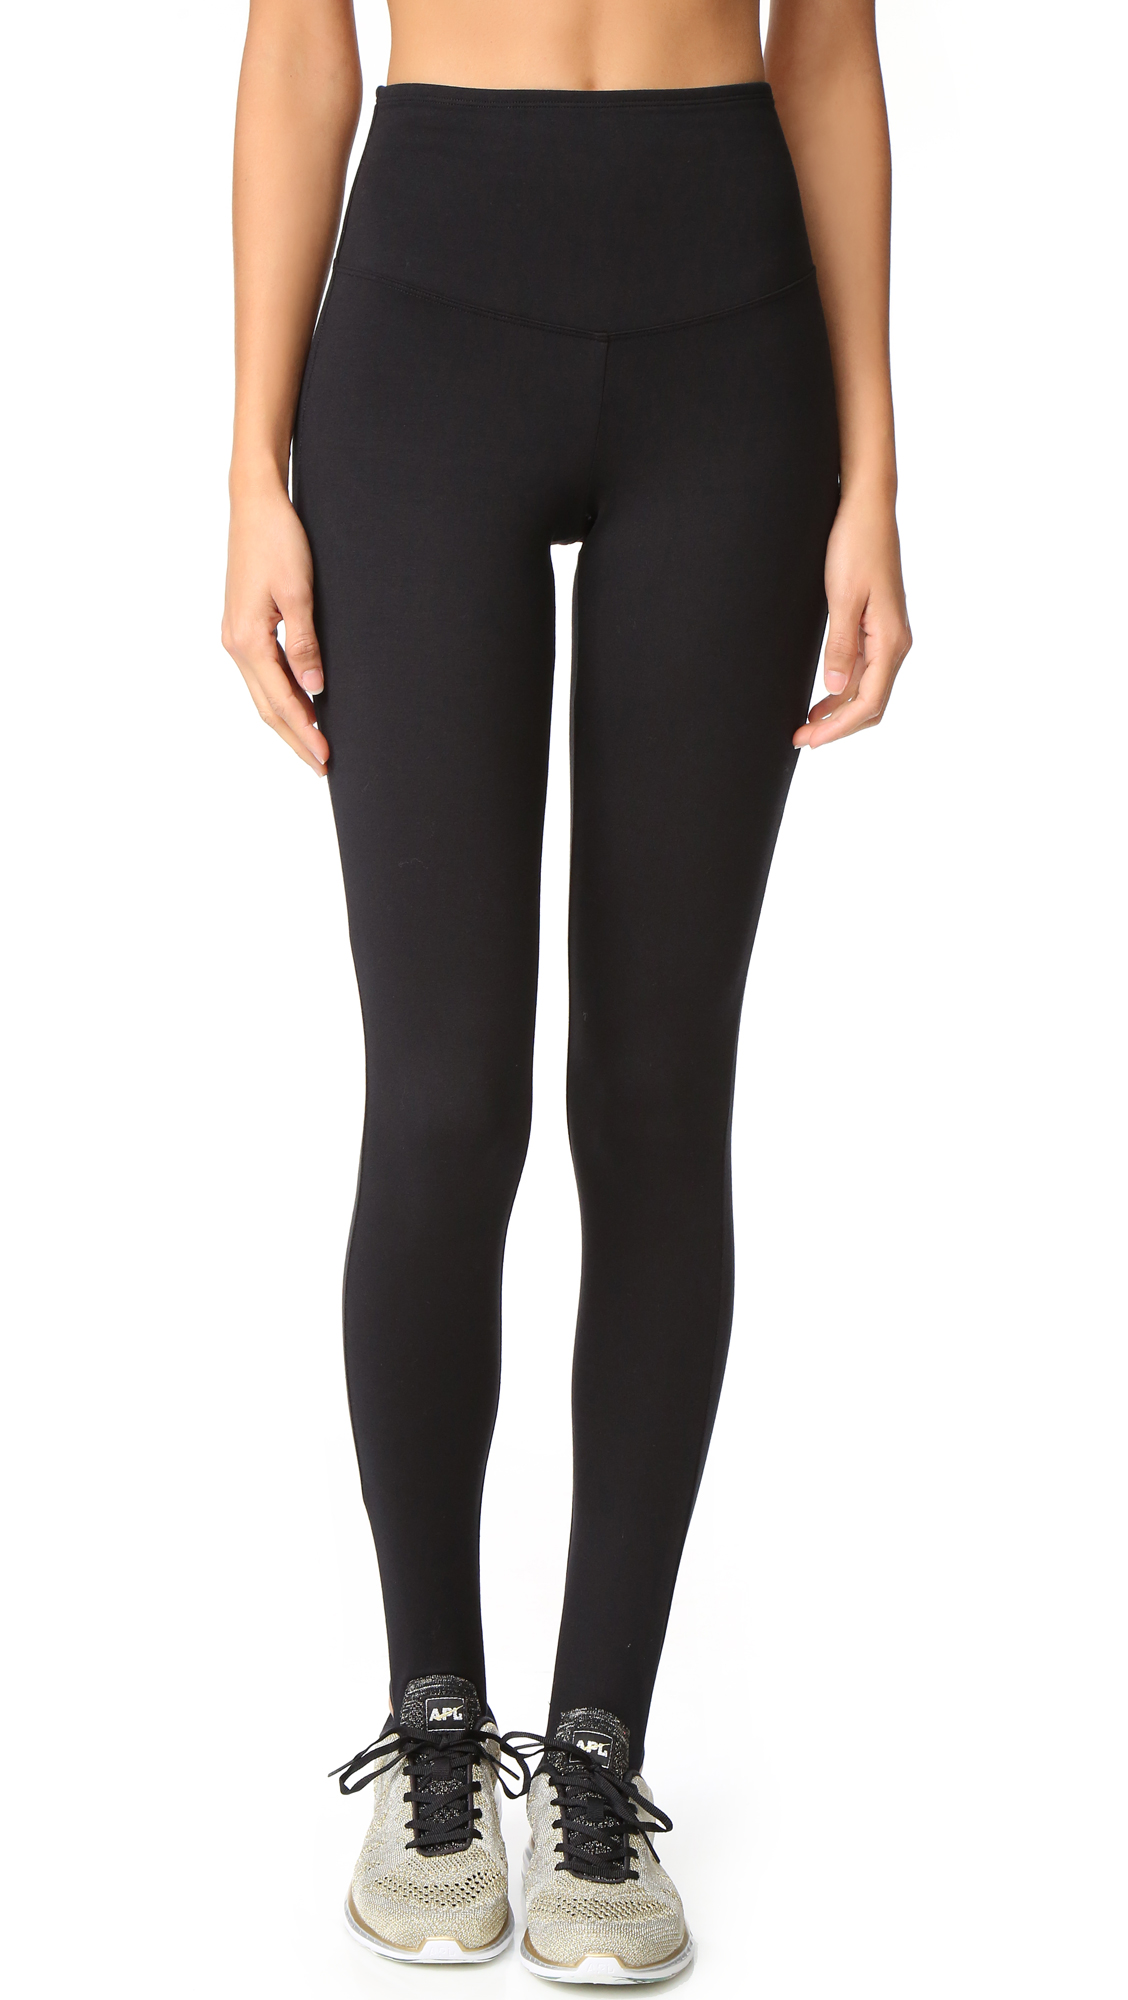 Classic stirrup leggings, composed of mid weight jersey and styled with a high rise. Double layer waistband for a smooth fit. Fabric: Mid weight jersey. 88% cotton/12% spandex. Wash cold. Imported, China. Measurements Rise: 10.75in / 27cm Inseam: 29.5